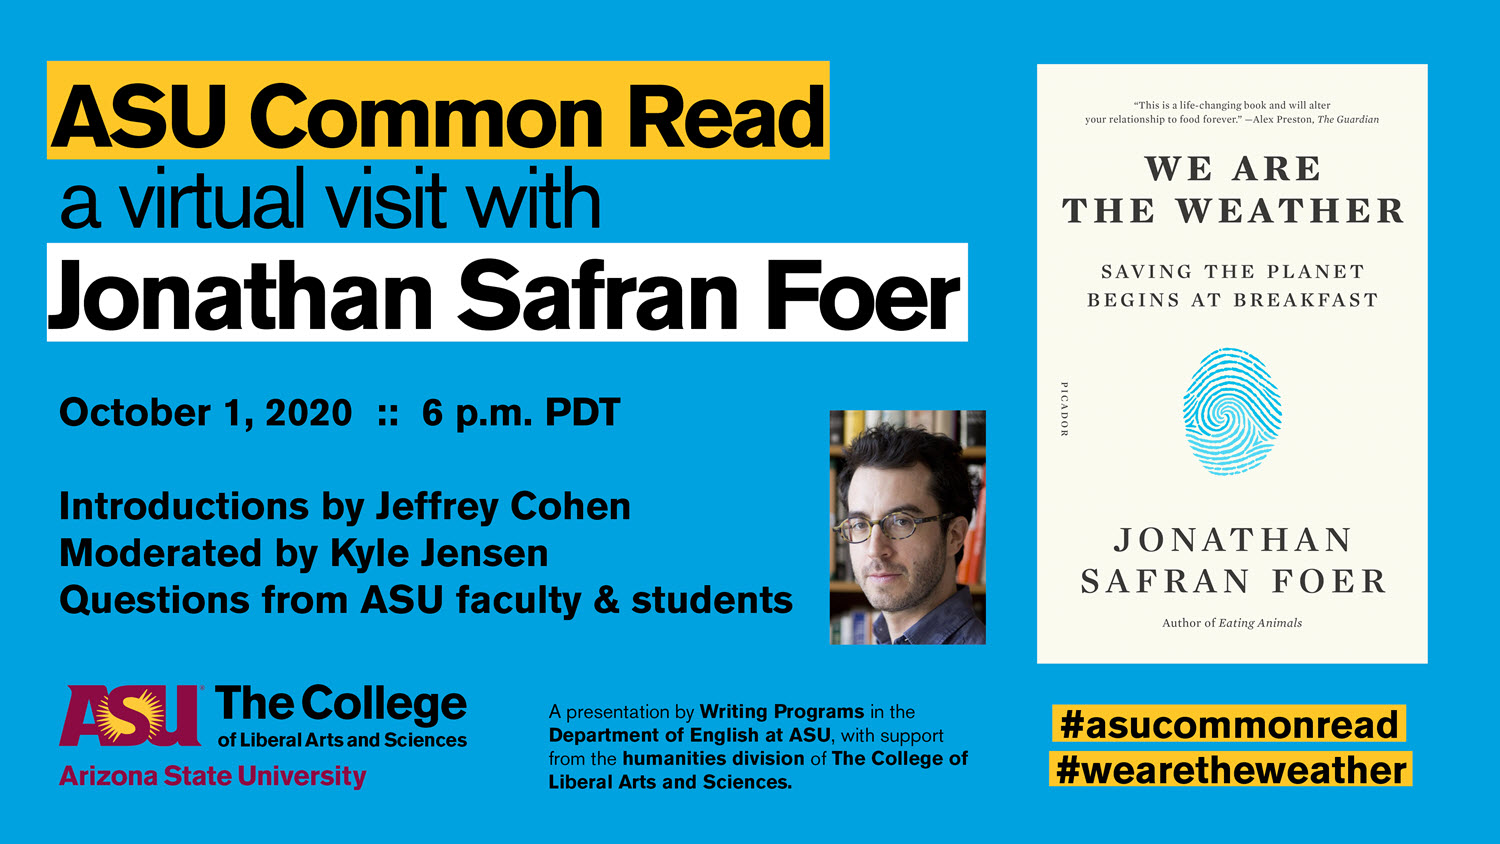 """Flyer for ASU Common Read event featuring author Jonathan Safran Foer and his book """"We Are the Weather"""""""